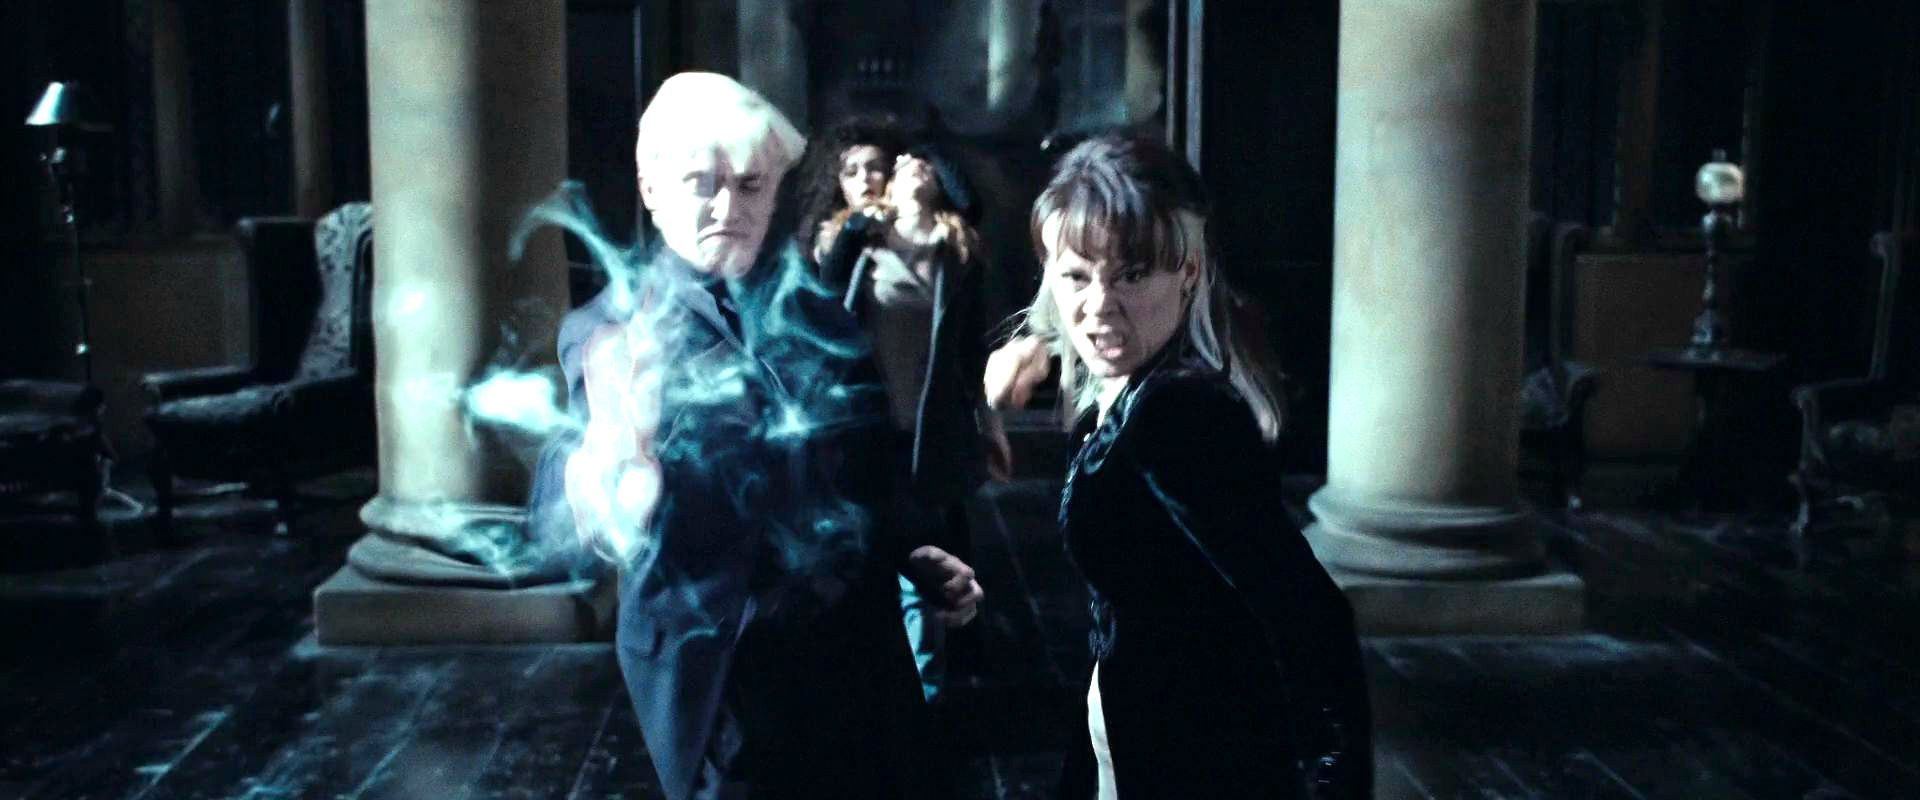 Narcissa y Draco luchando